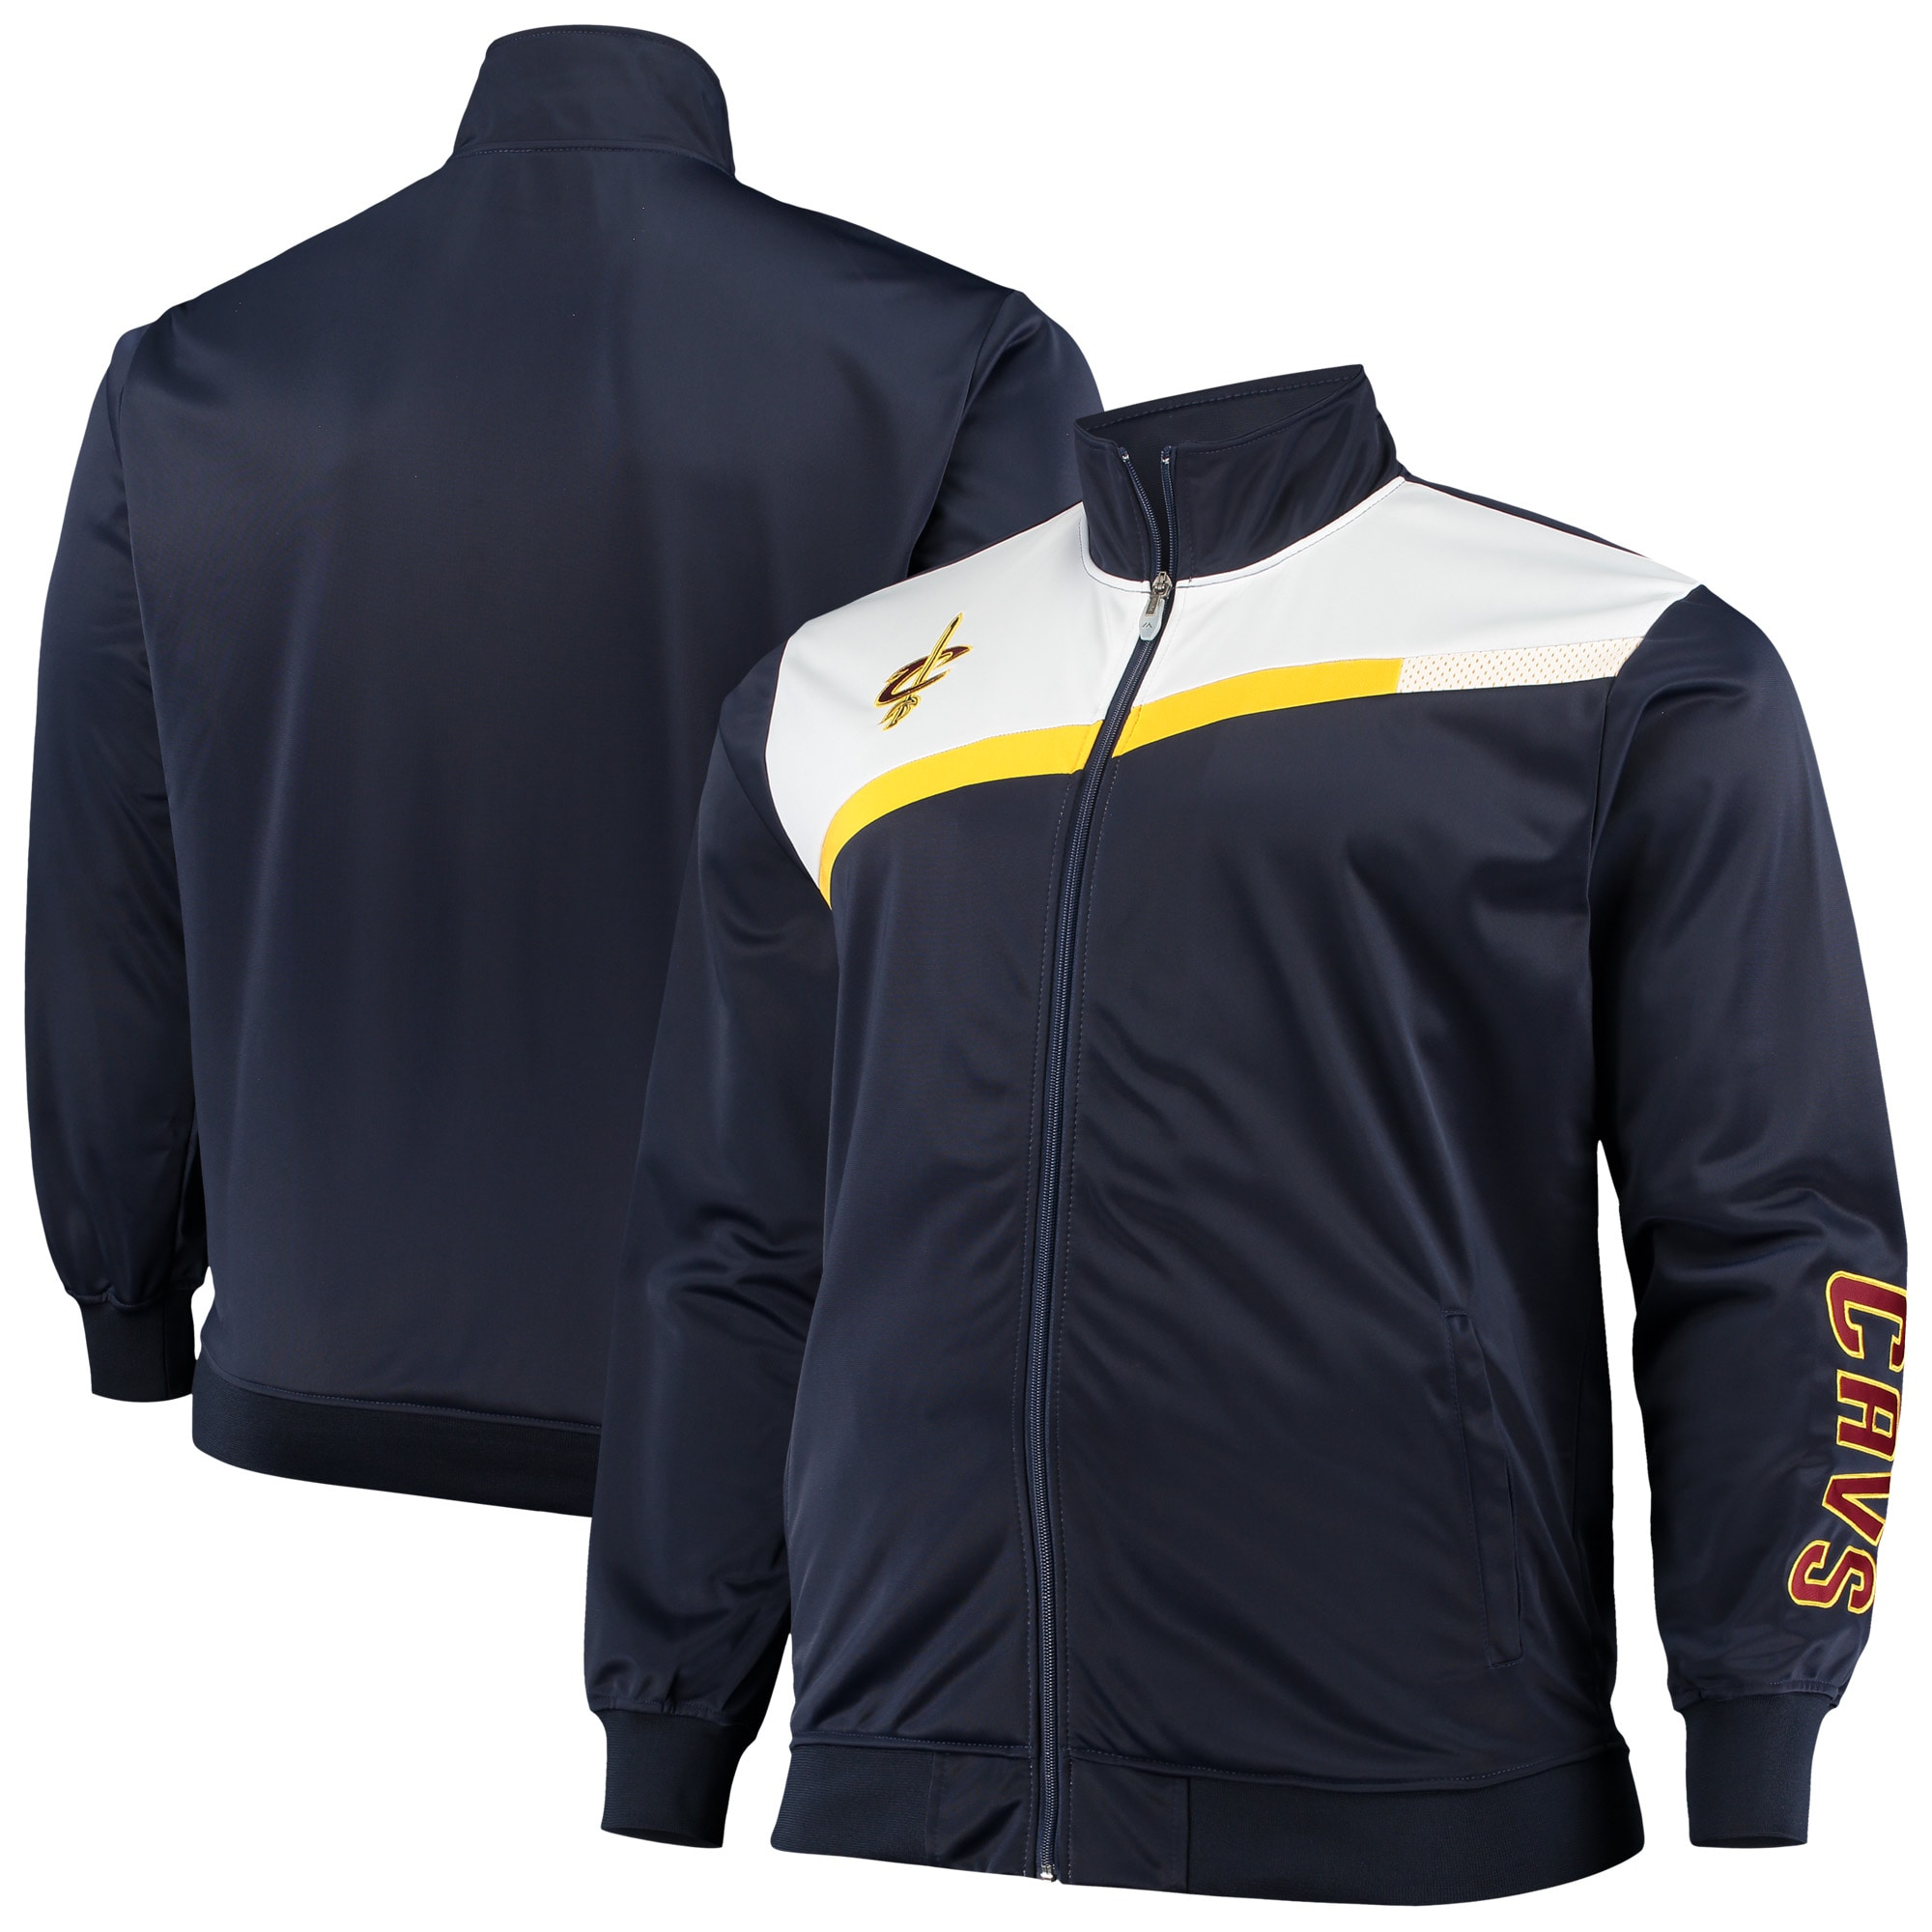 Cleveland Cavaliers Big & Tall Showtime Tricot Full-Zip Track Jacket - Navy/White